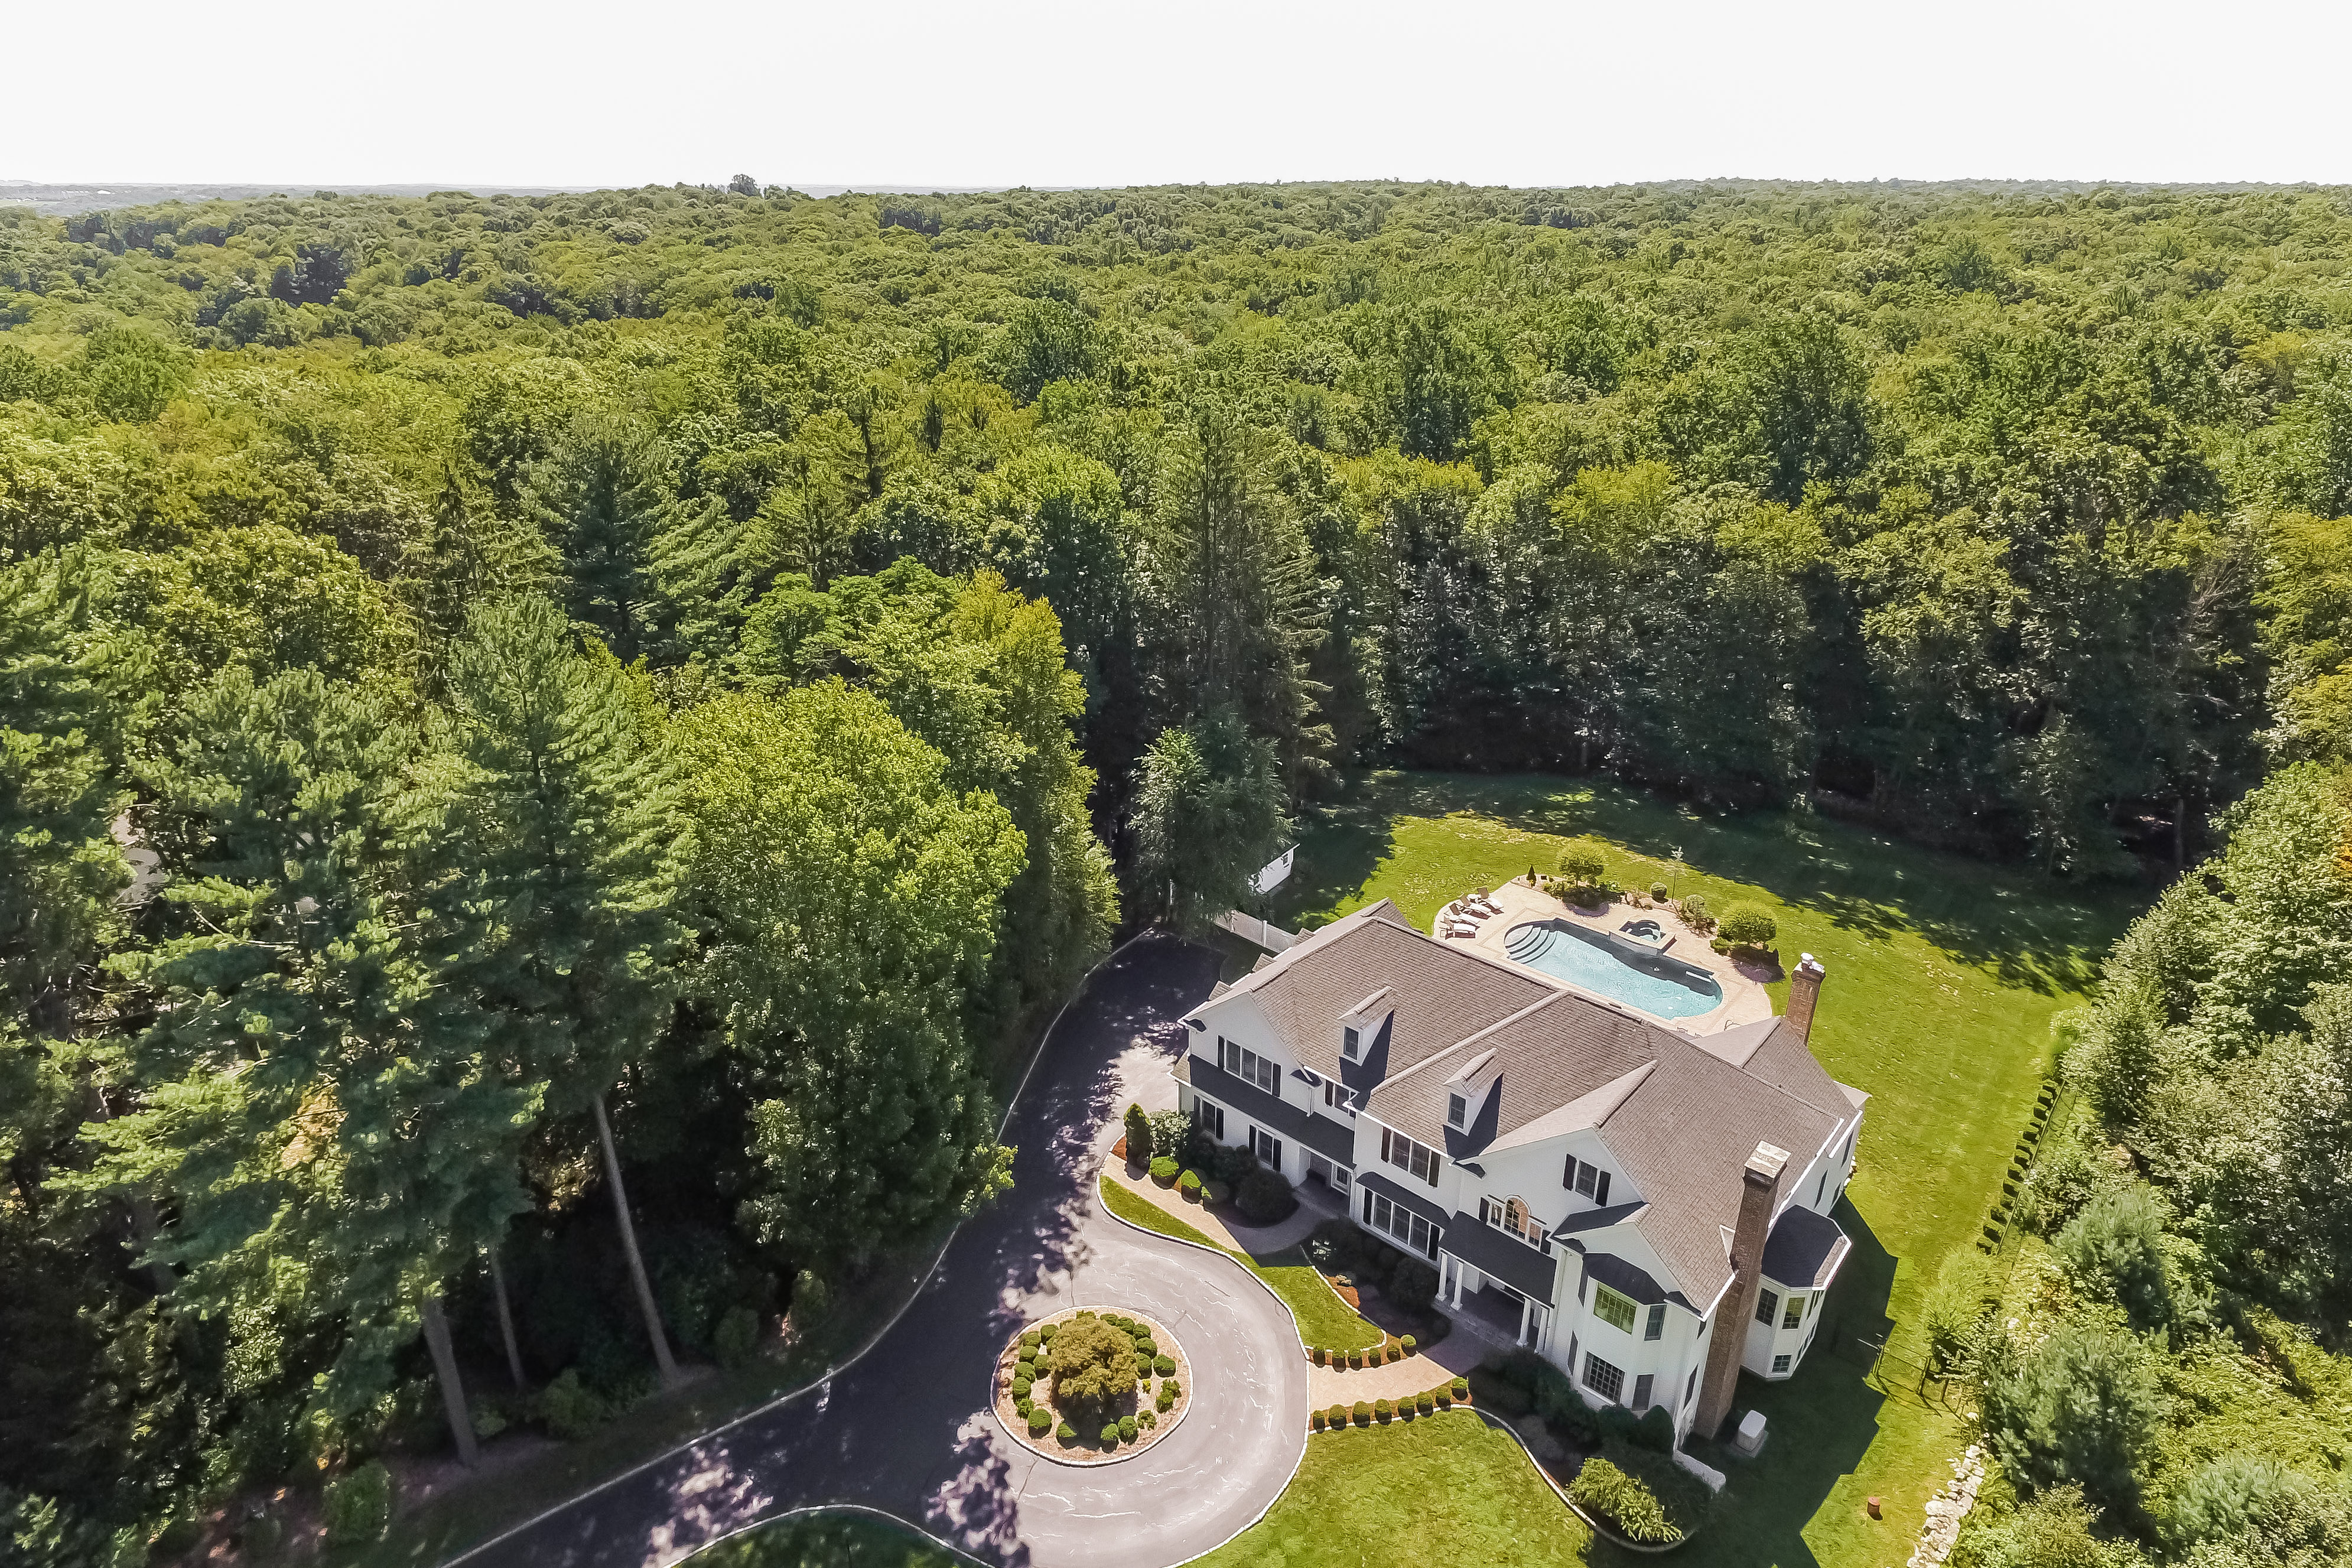 Single Family Home for Sale at Exceptional Custom Designed Home 6 Eustis Lane Ridgefield, Connecticut, 06877 United States